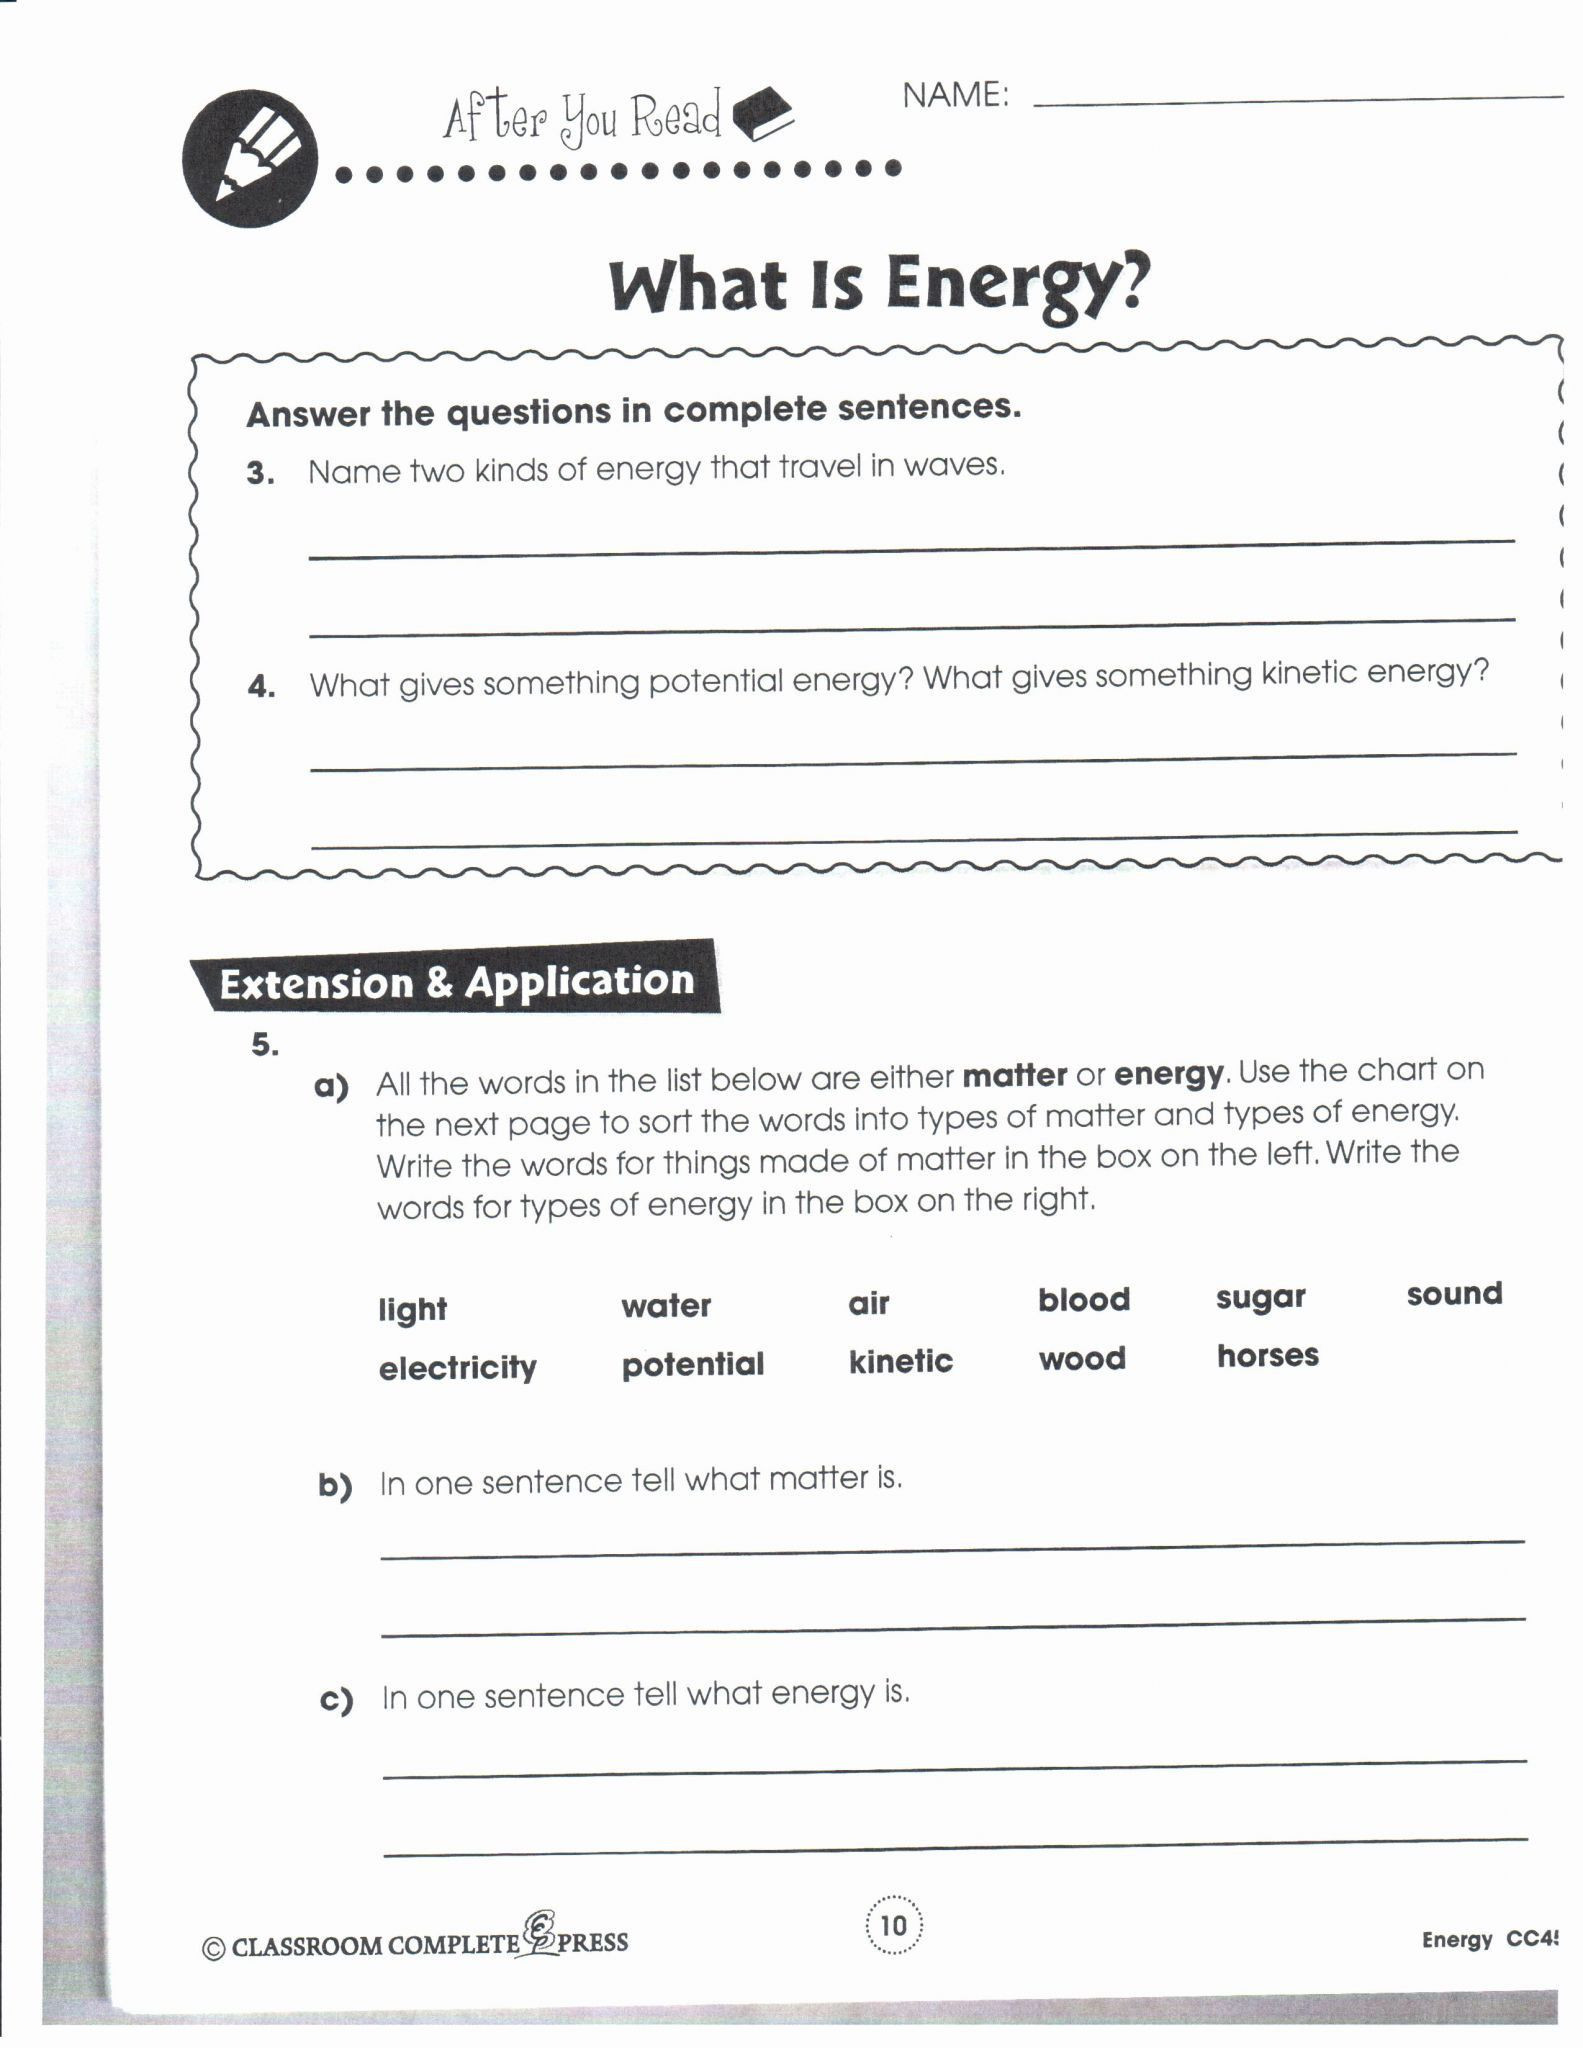 Energy Transformation Worksheets Middle School Energy Conversion Worksheet 6th Grade